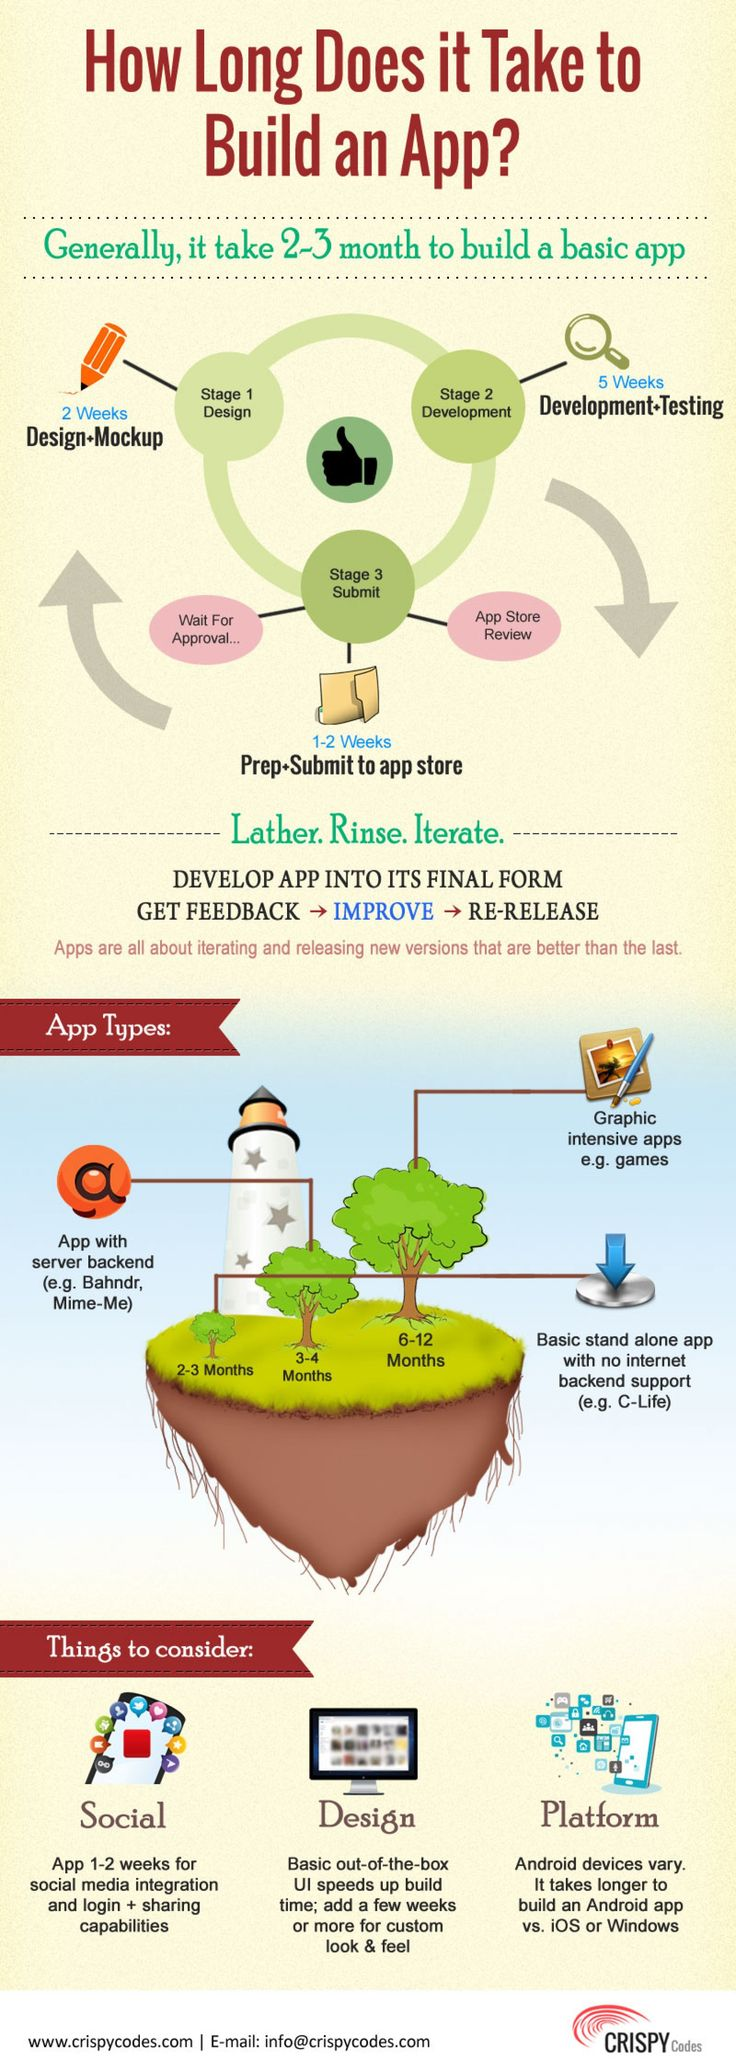 Infoghraphic Representation about How Much Time it Could Take to Create a Mobile Application? We did Marketing Research on Mobile App Development Agency and Mobile Application Developers and than We Created this Infographic which Provides Accurate Information about App Development Timeline. For More Information Please Contact at:www.crispycodes.com/mobile